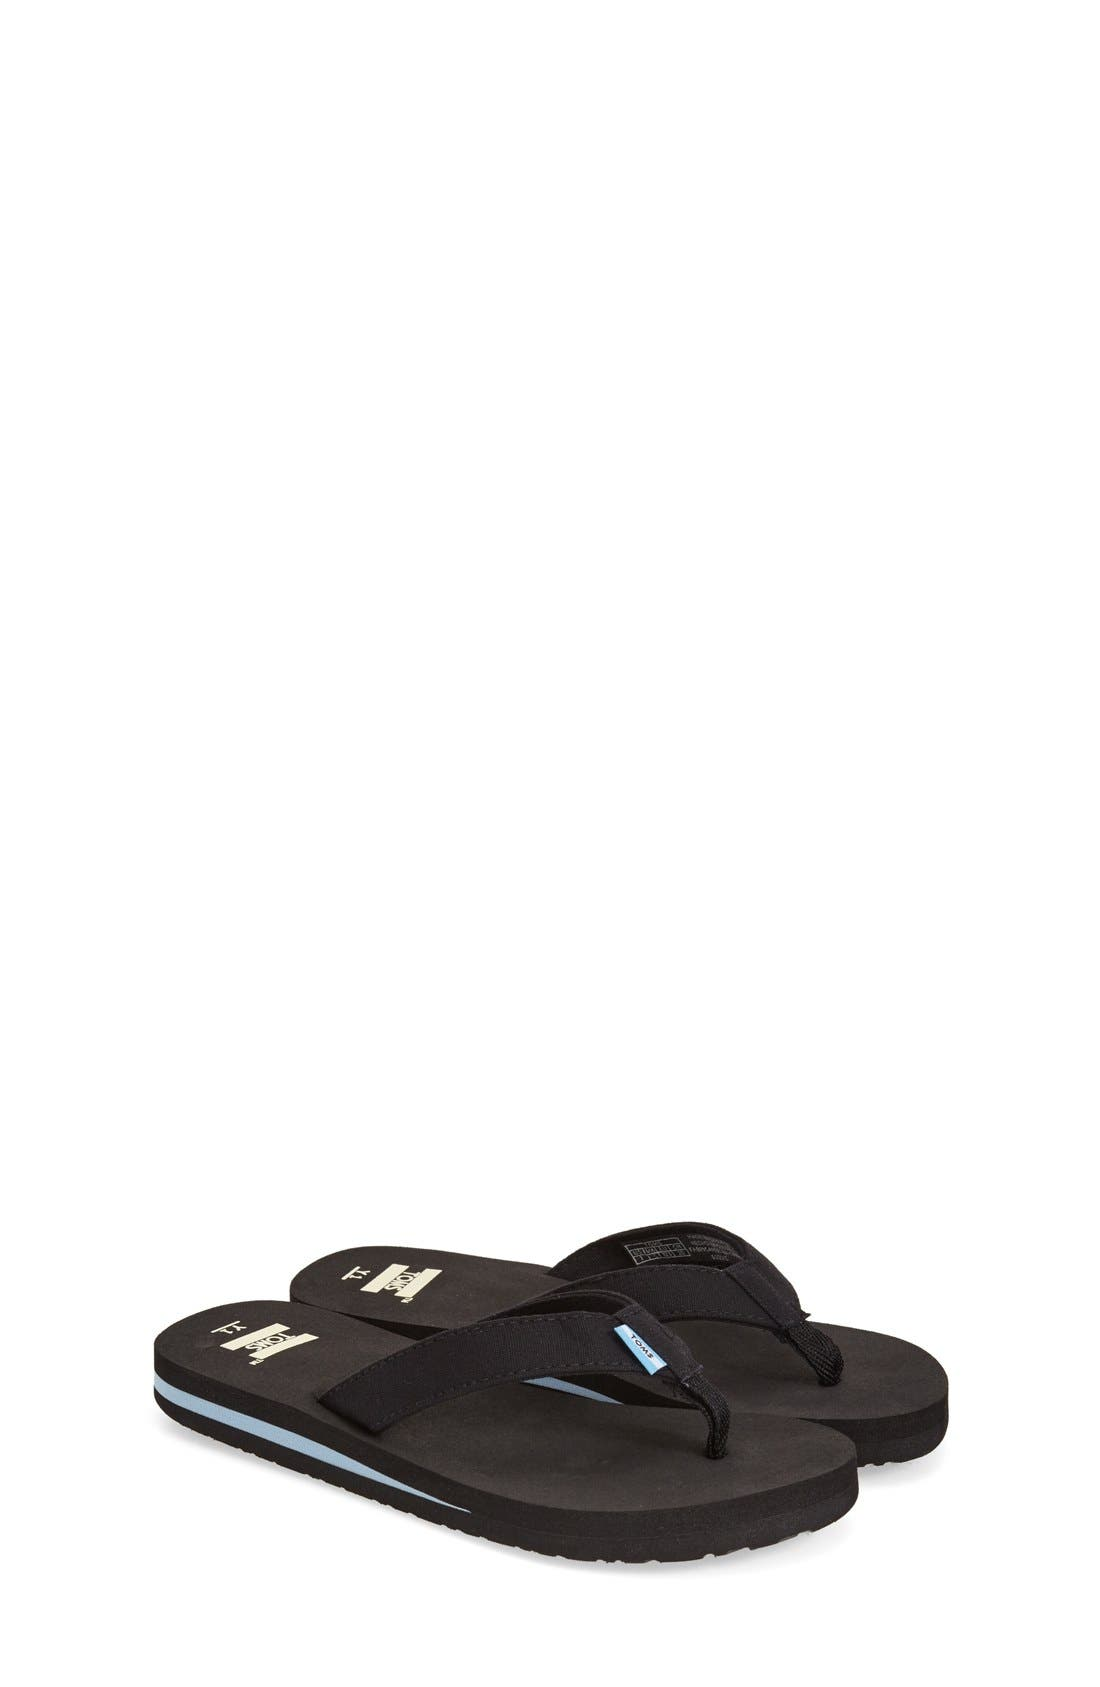 'Verano' Flip Flop,                             Main thumbnail 1, color,                             BLACK